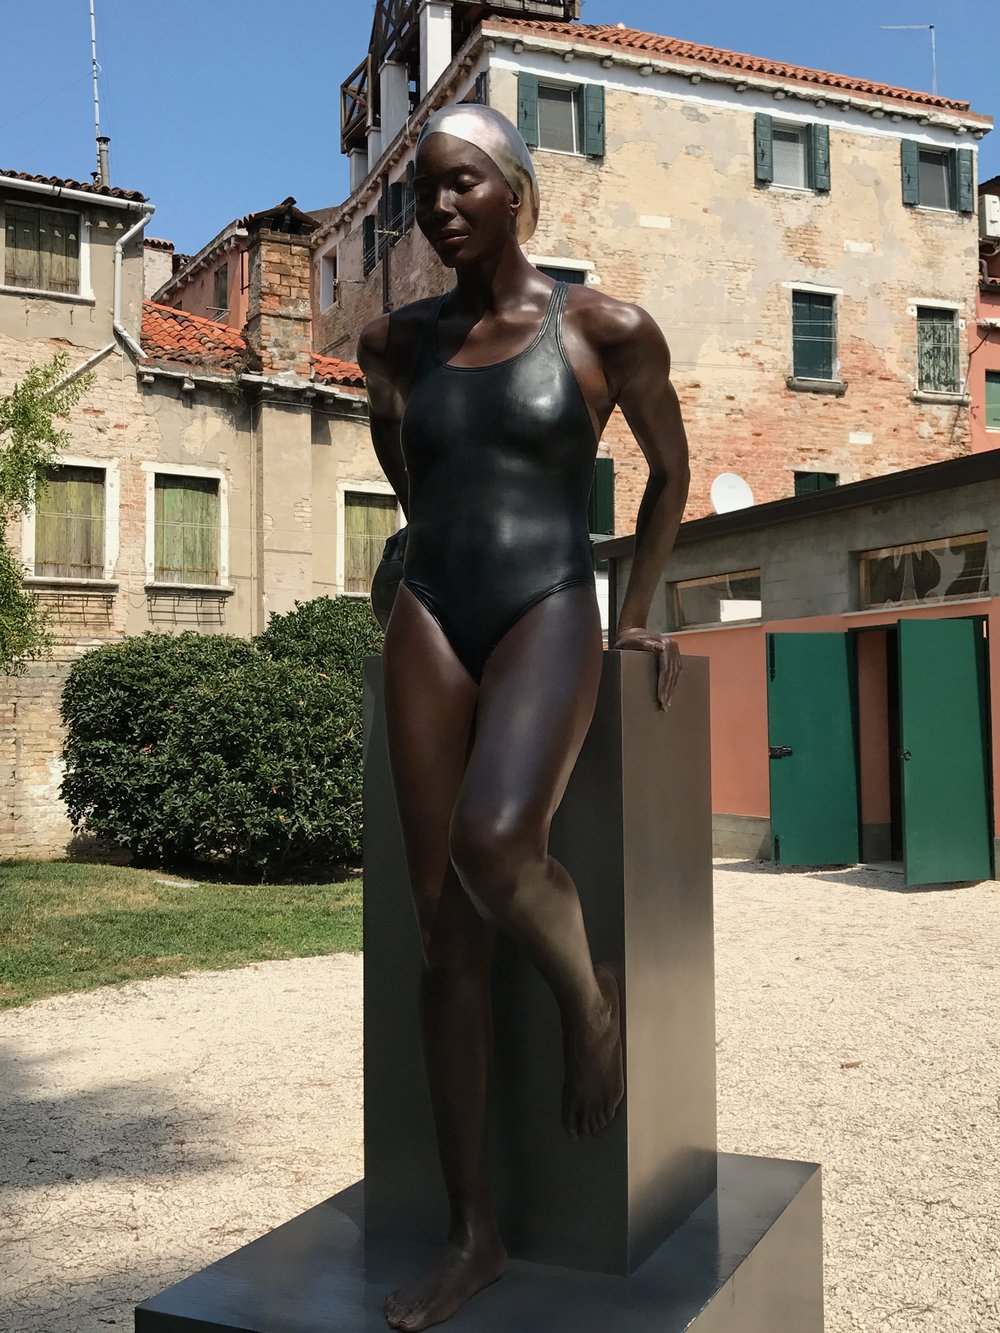 "Yaima & The Ball, Bronze, 2016, Giardini Marineressa, Venice, Italy, 70"" x 28"" x 39"""